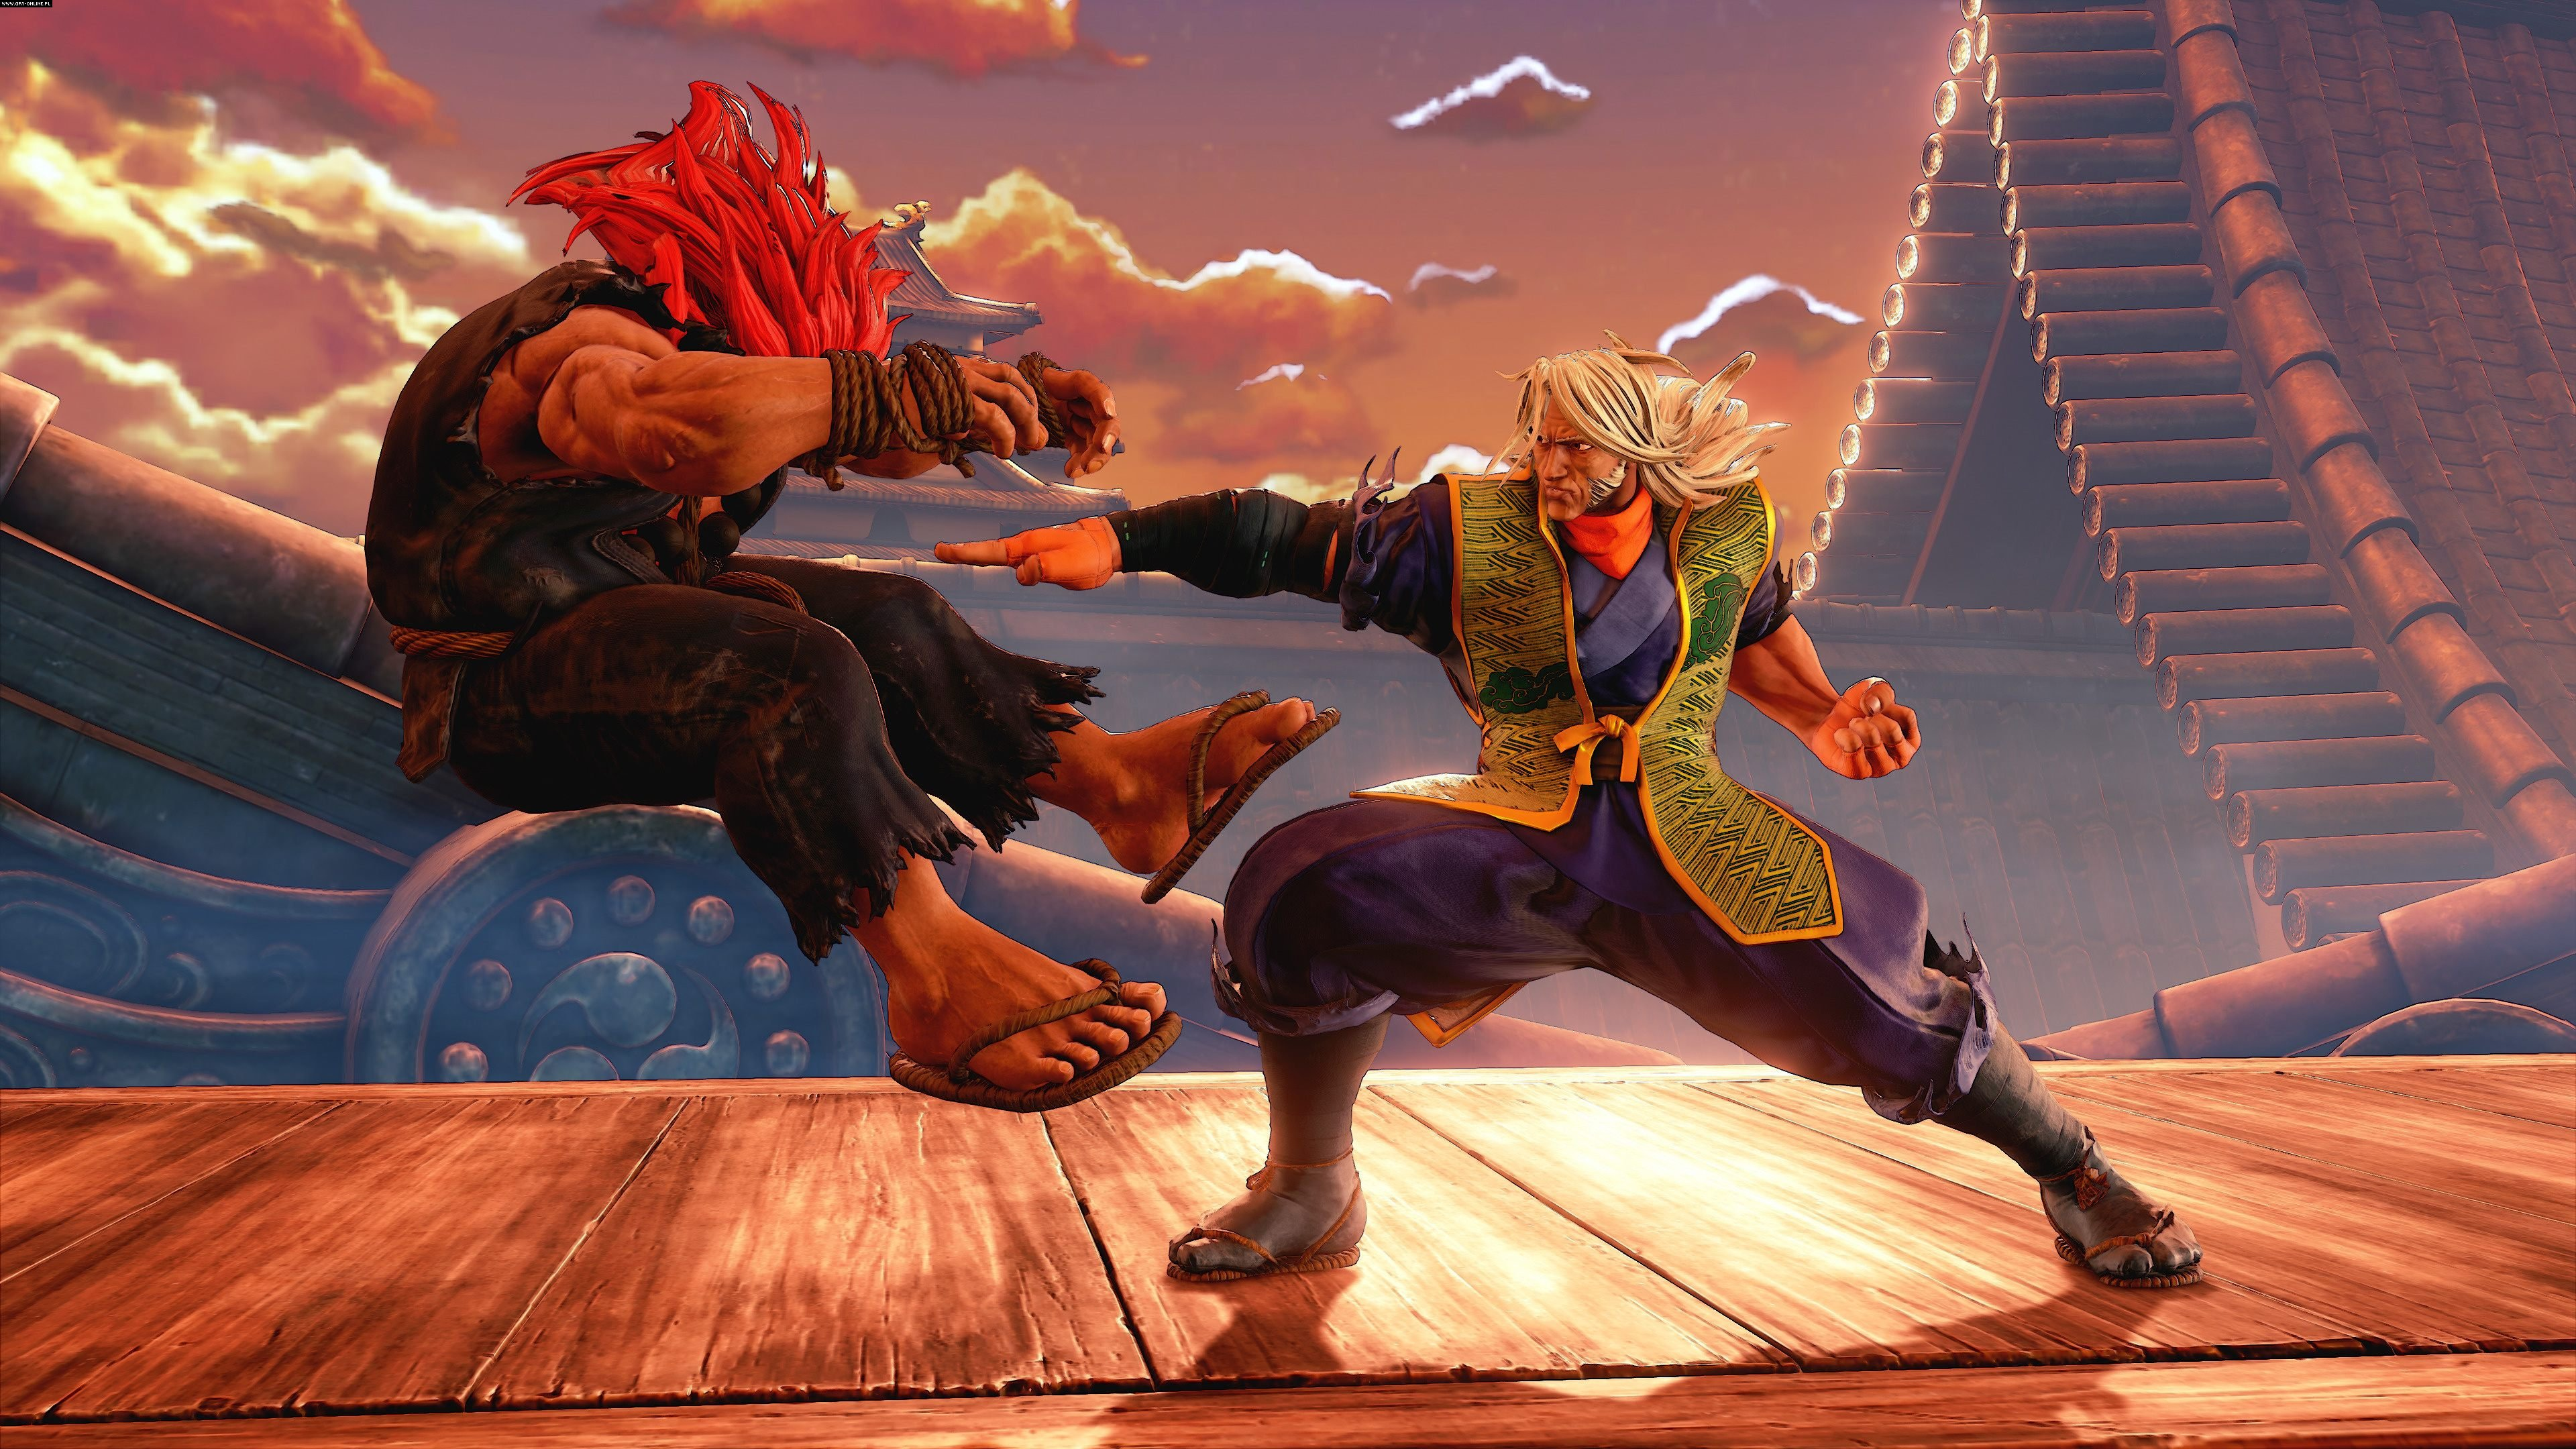 Street Fighter V PC, PS4 Games Image 6/283, Capcom